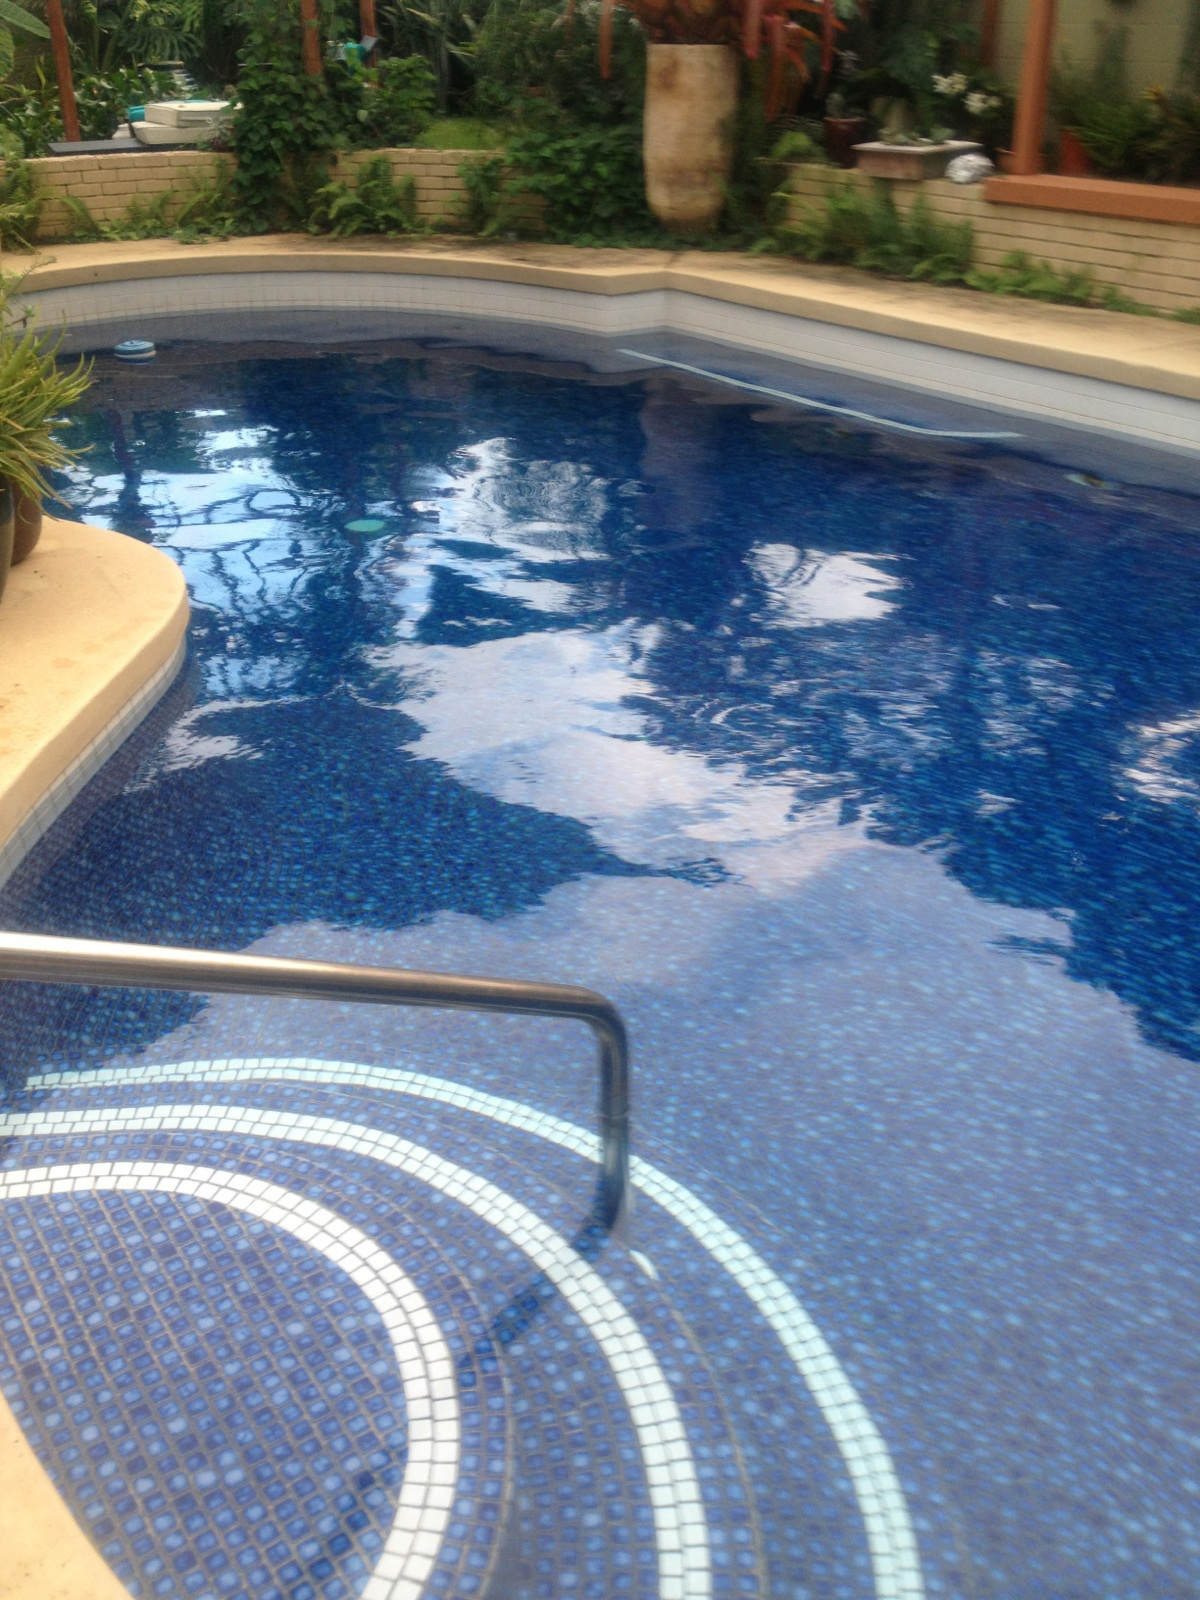 Residential pool in Kailua, HI before analysis and cleaning